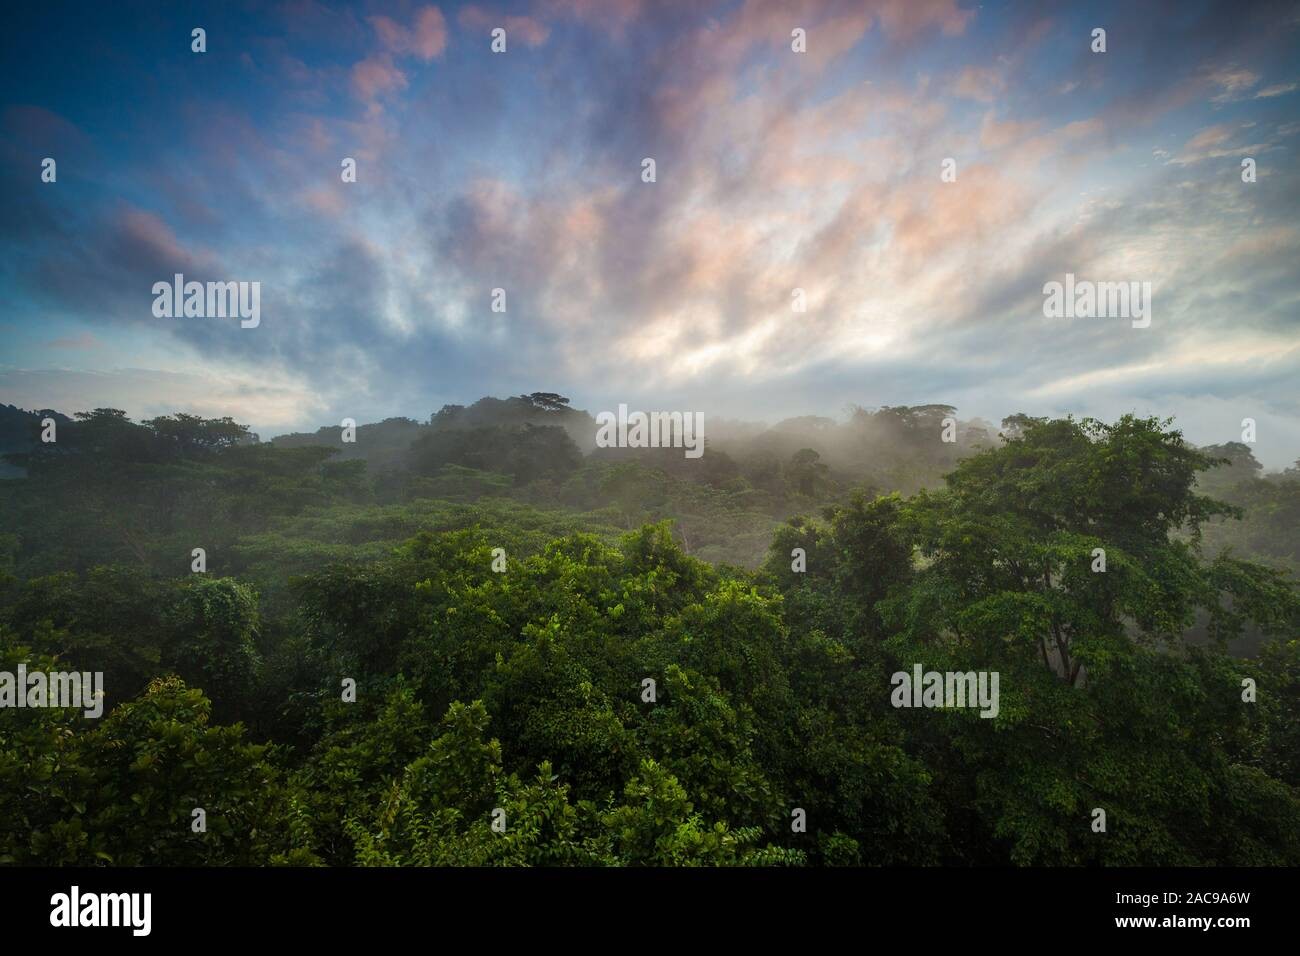 Misty rainforest au lever du soleil dans le parc national de Soberania, Colon province, République du Panama. Banque D'Images